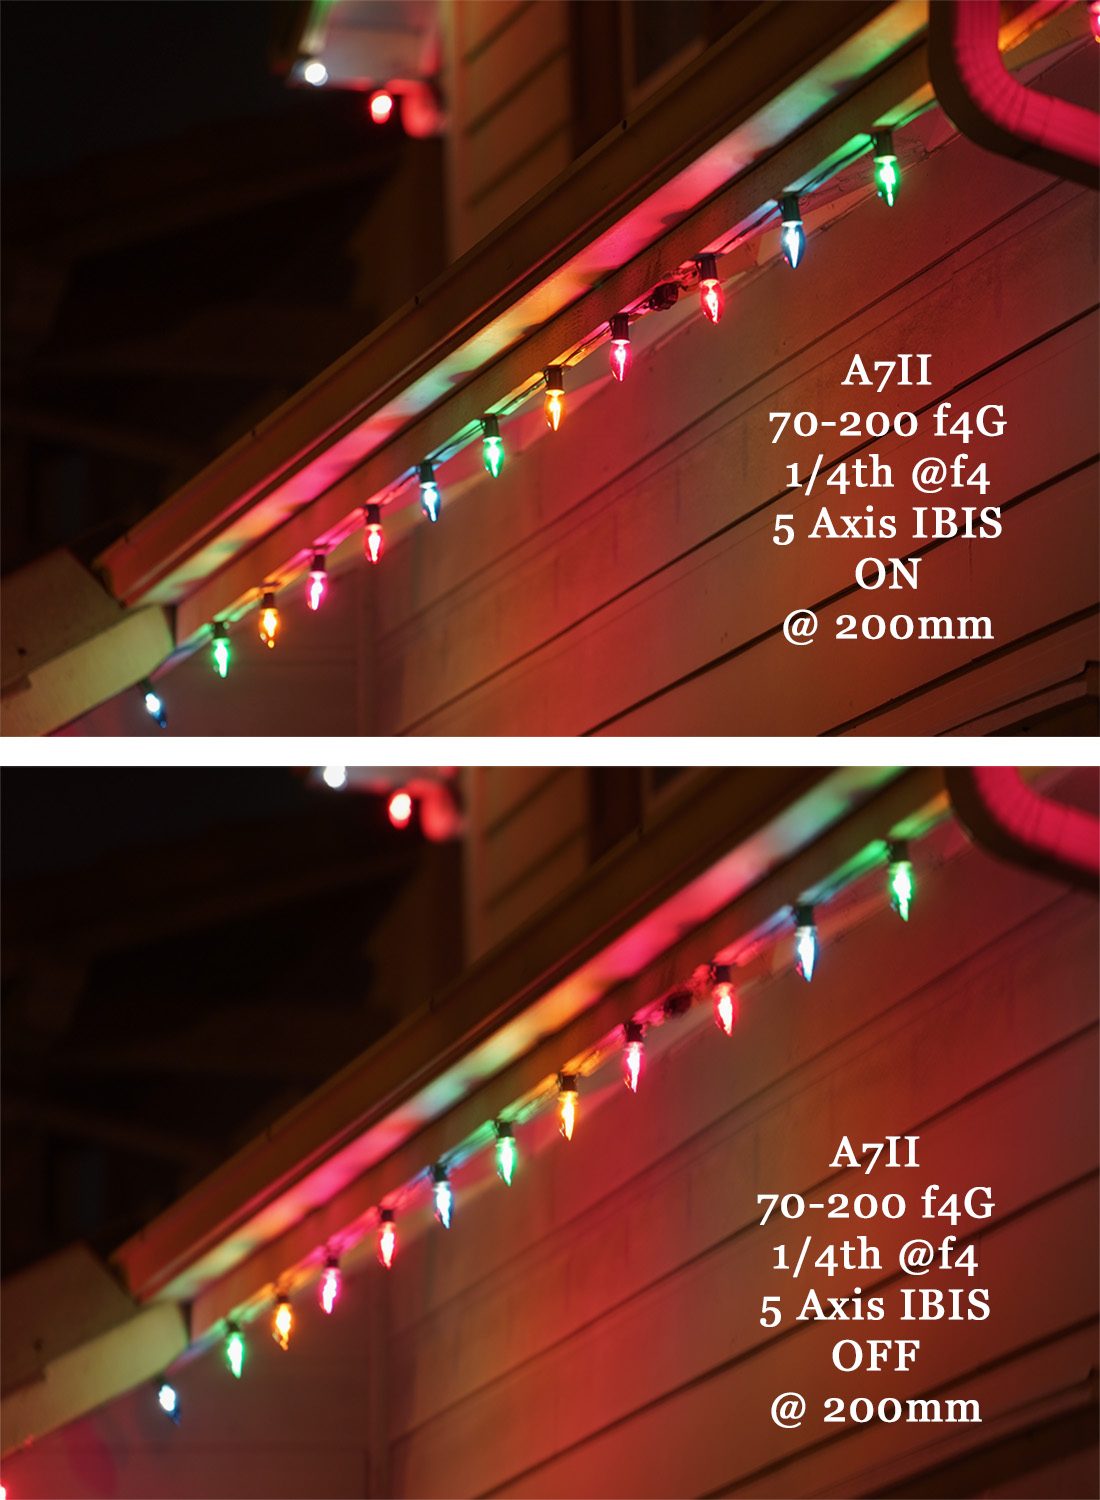 Using the 70-200 f4 G OSS at 200mm at 1/4 second, the new 5 Axis IBIS allows for a sharp image which is astounding for such a long focal length! The bottom image shows the result of turning IBIS Off.